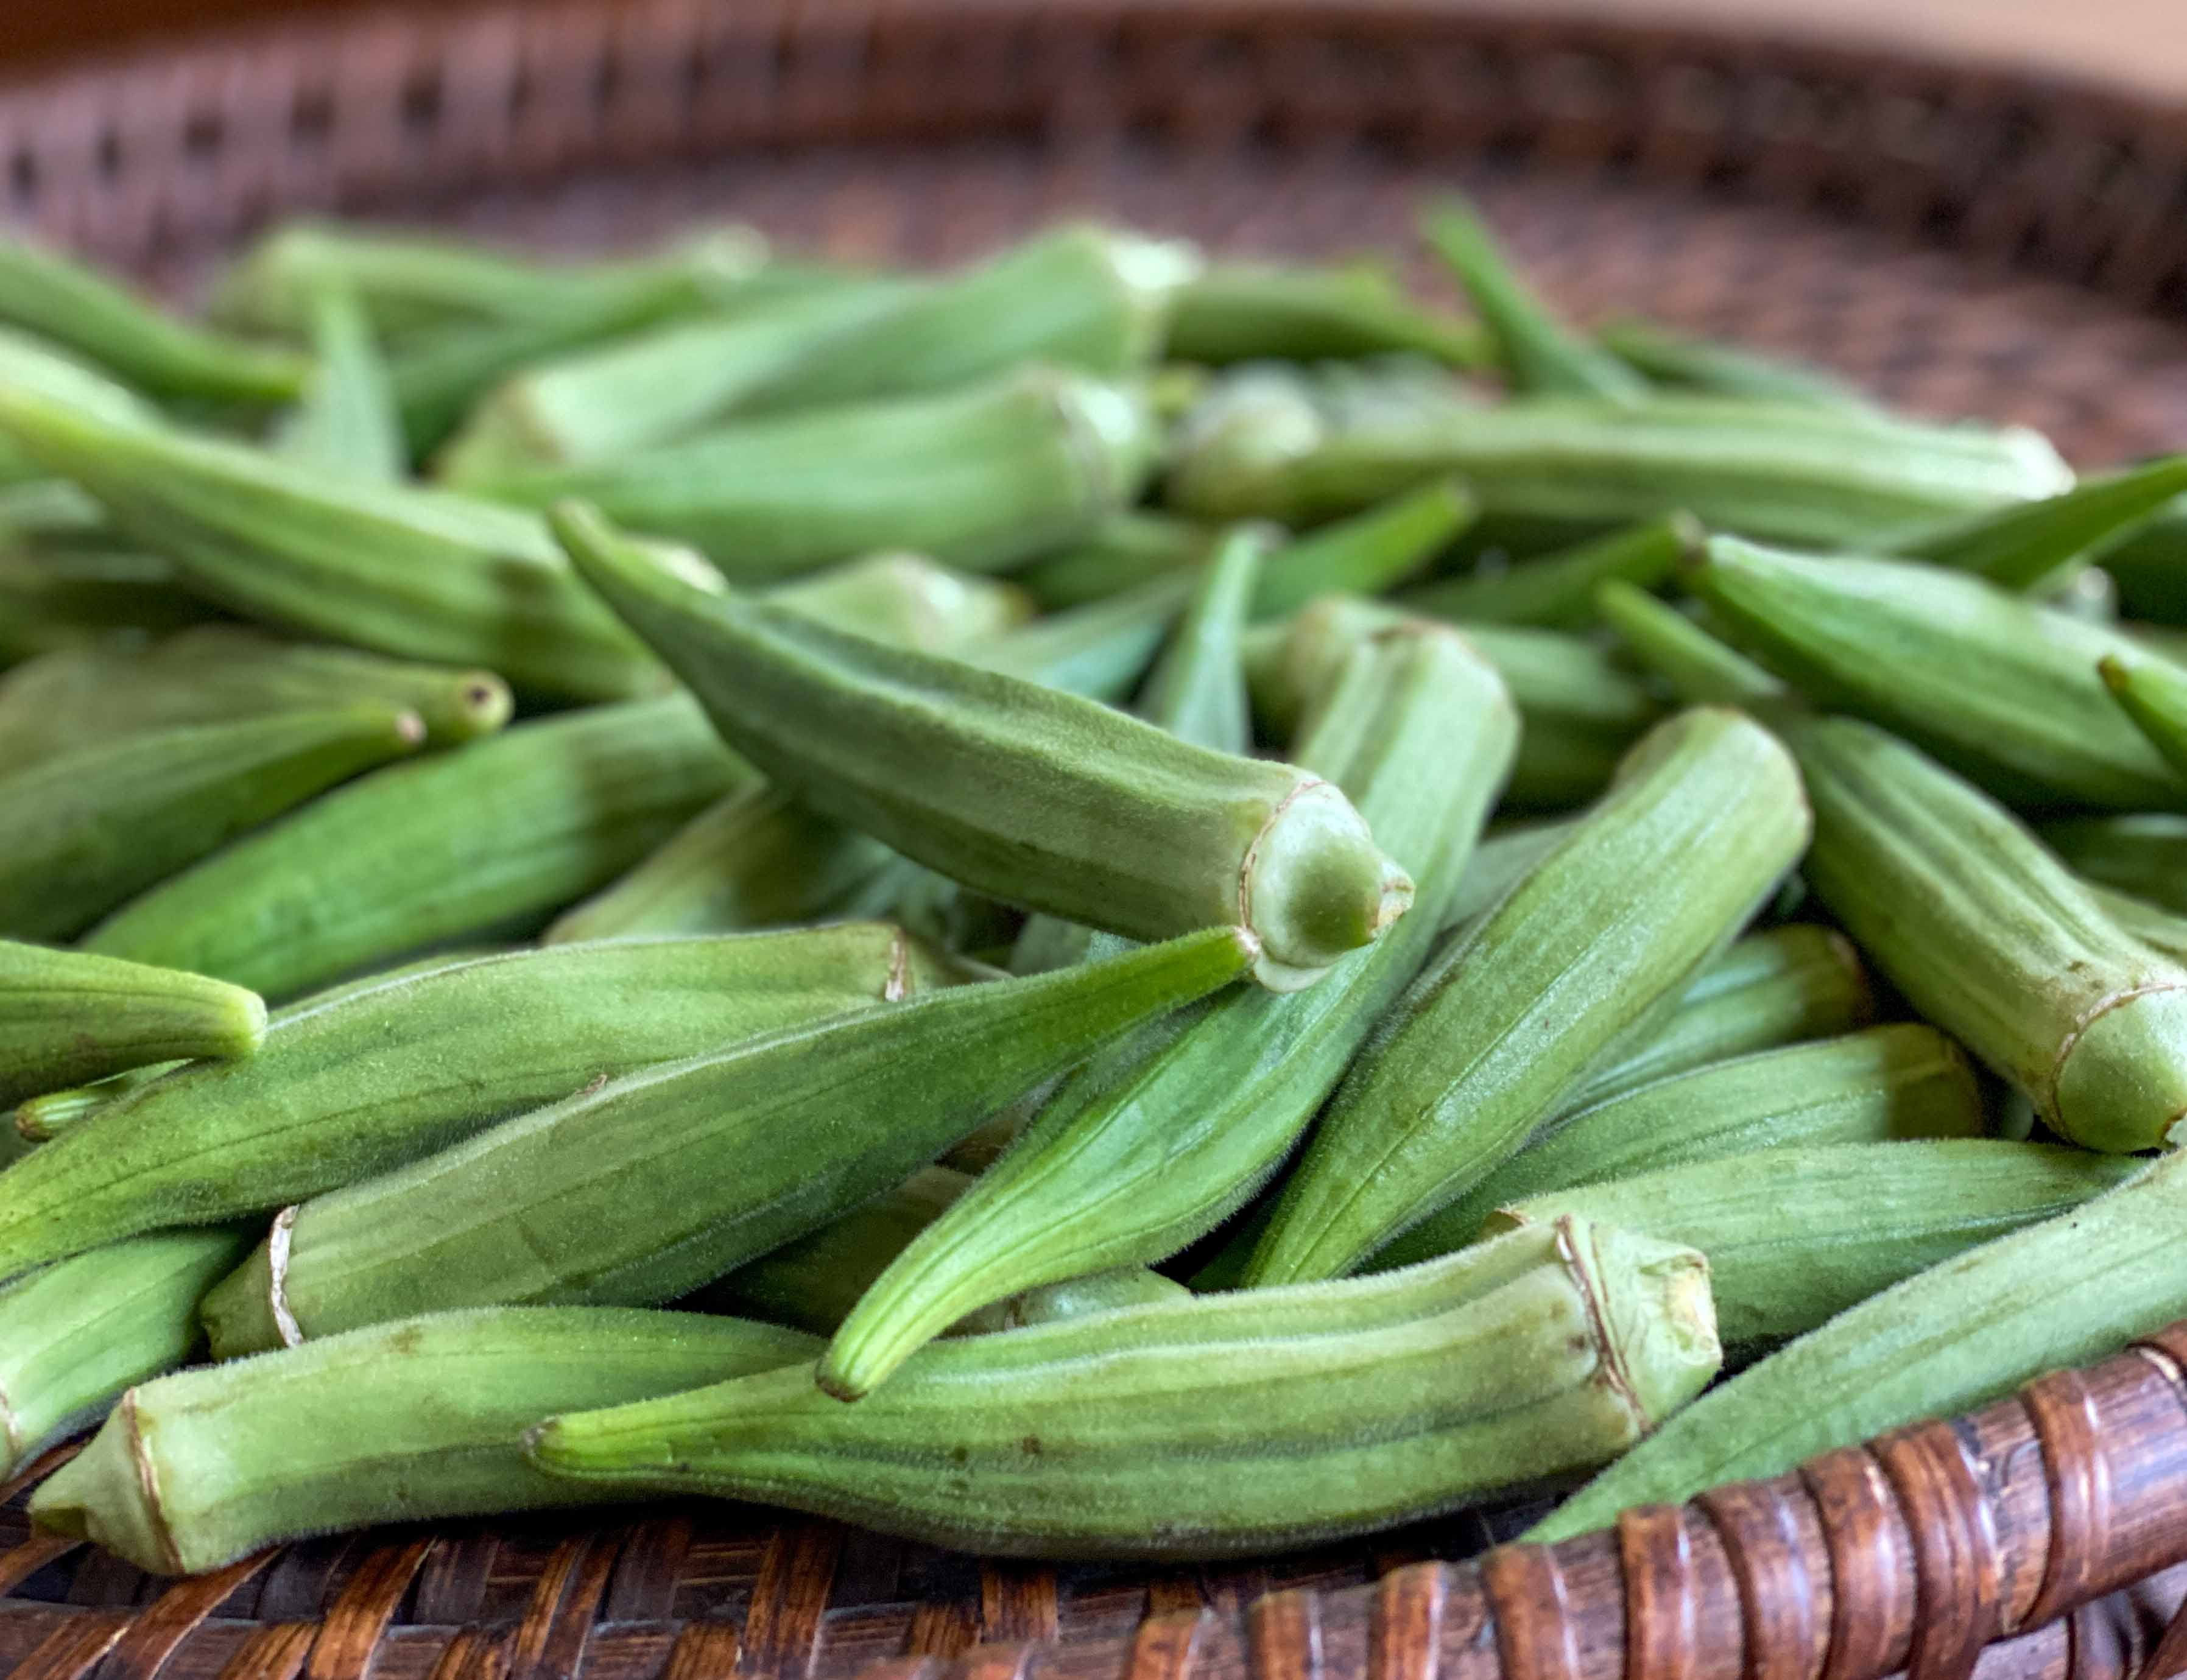 Fresh okra pods are spread on a brown basket.